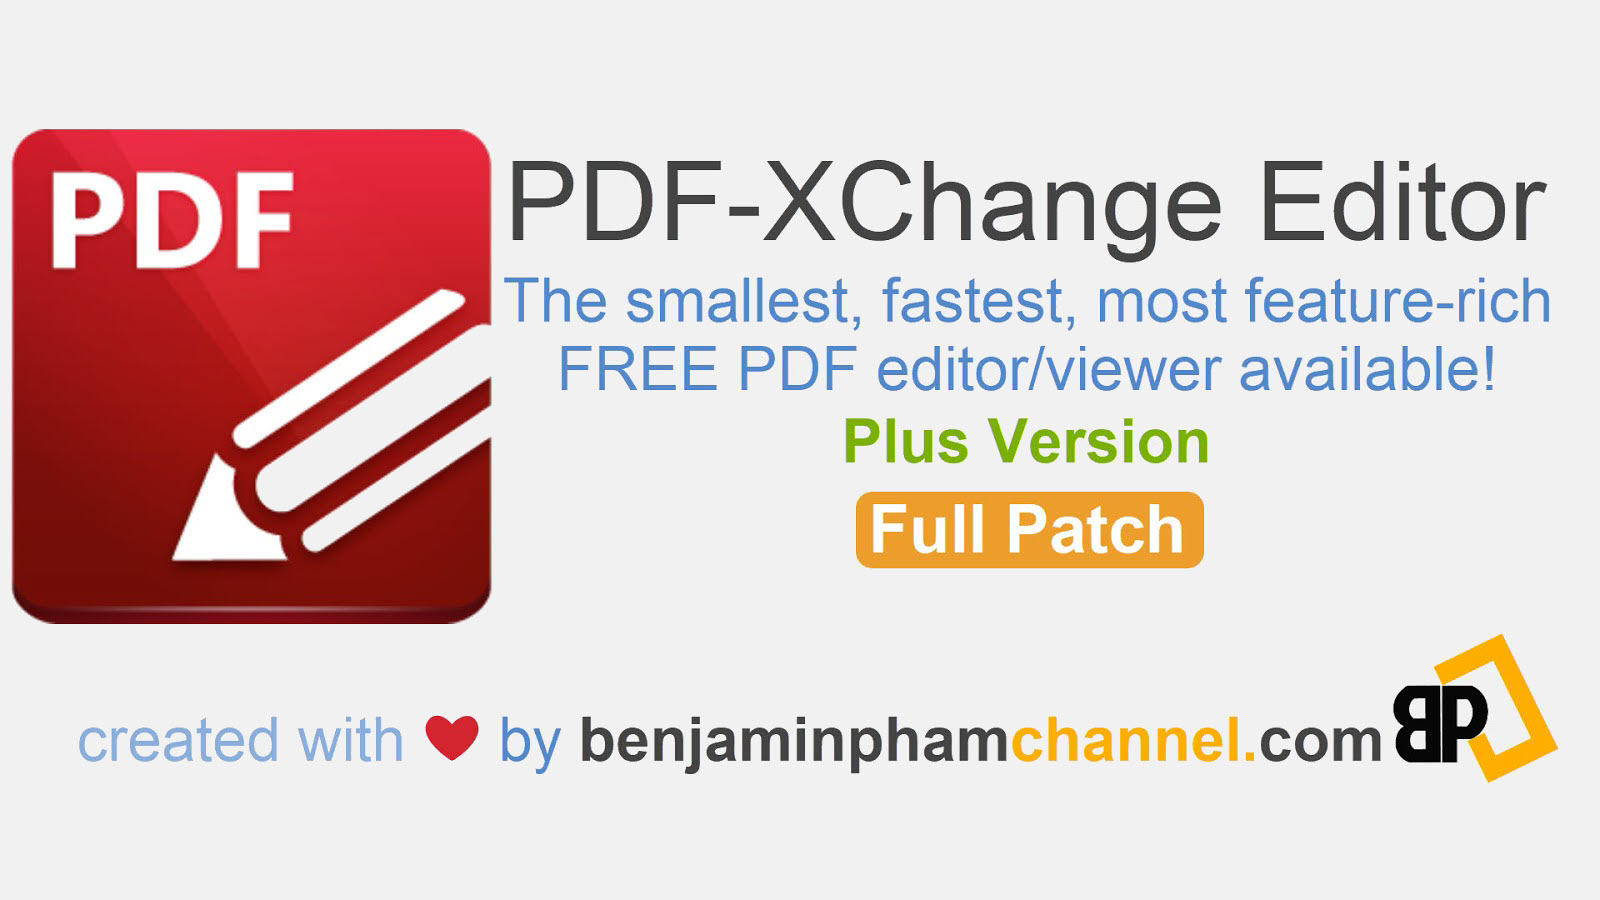 PDF-XChange Editor Plus 7.0.328.0 + Portable